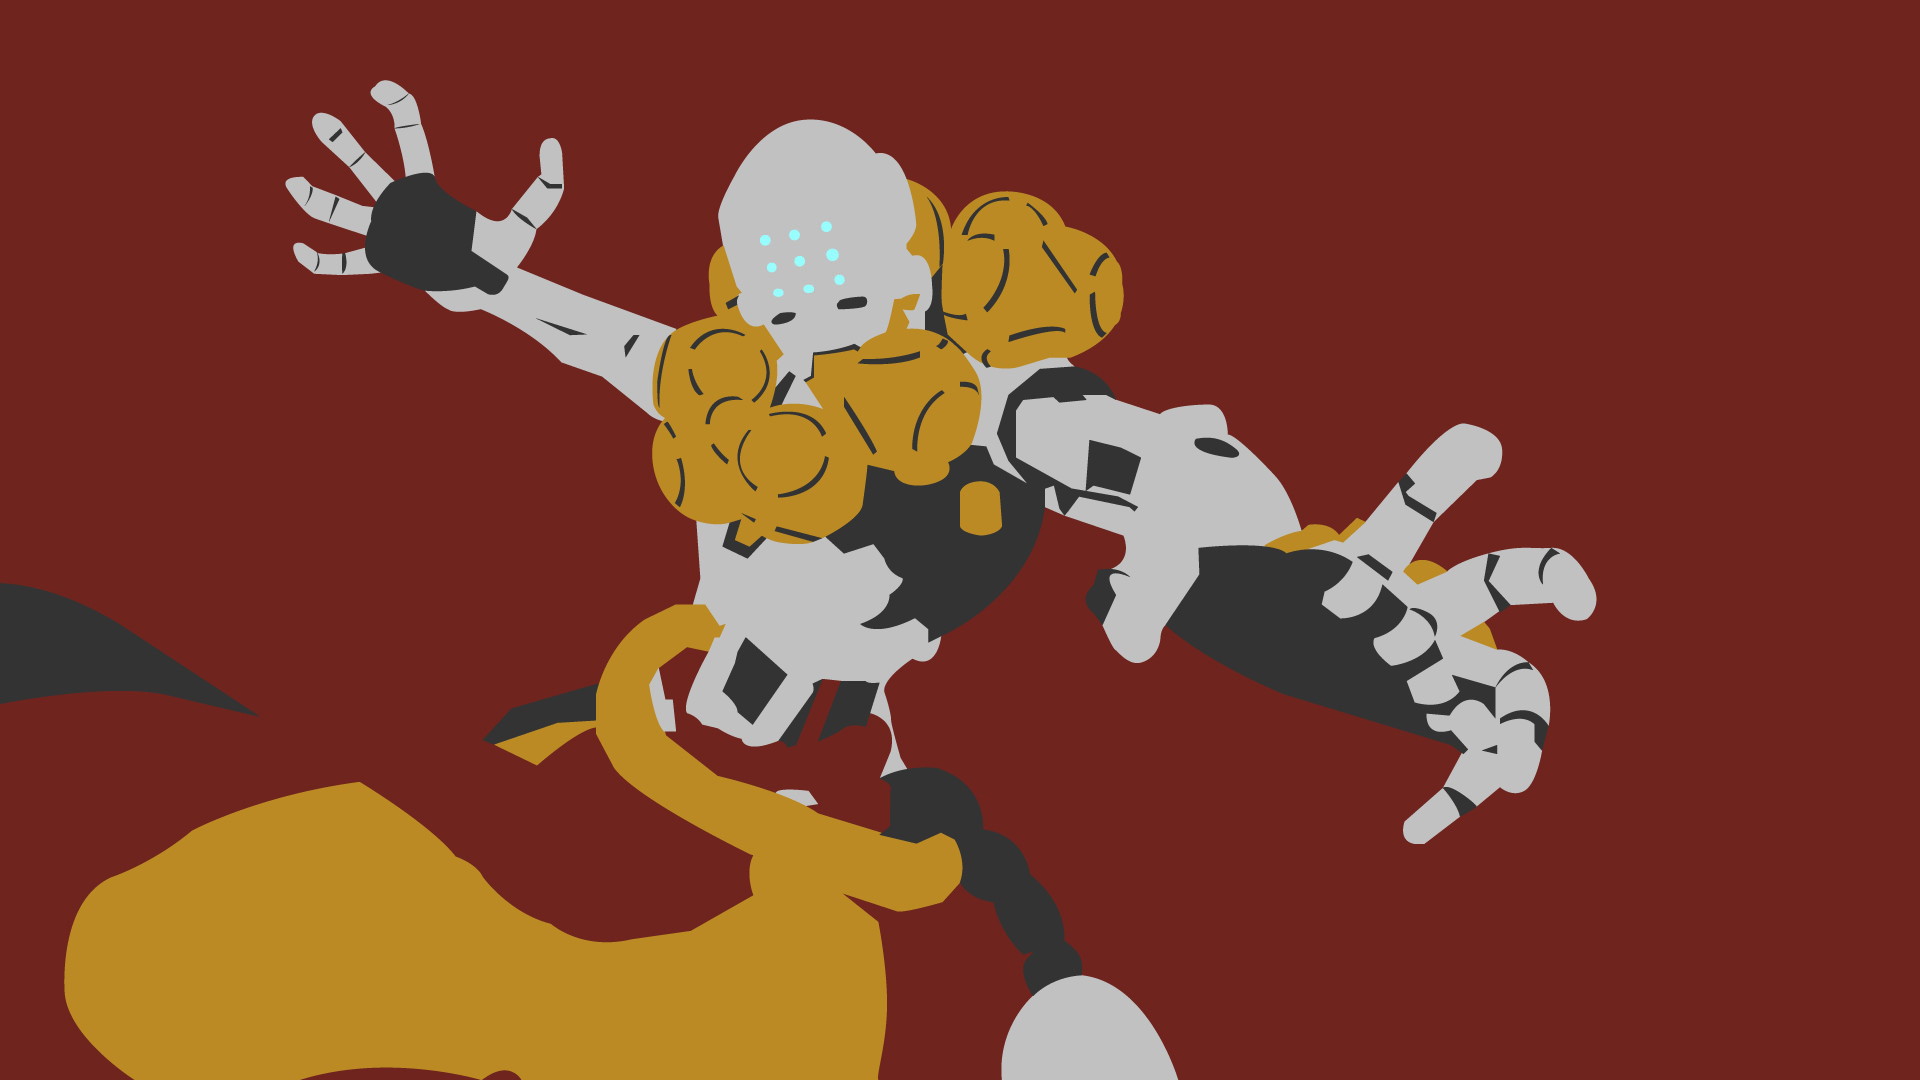 1920x1080 ... Overwatch Vector Wallpaper - Zenyatta by choren64